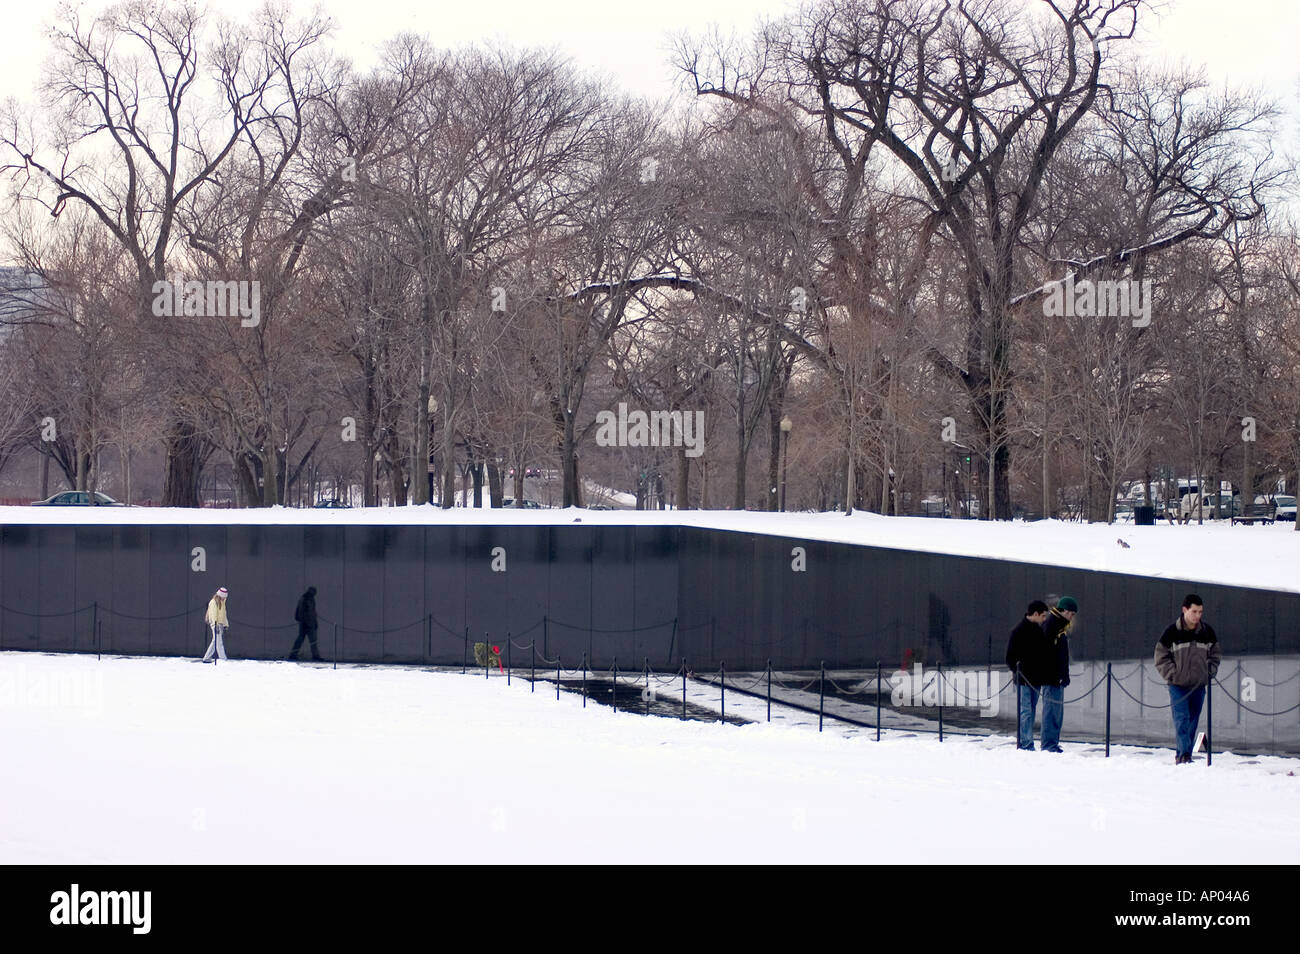 Exceptionnel MAYA YING LIN Designed The VIETNAM VETERANS MEMORIAL Known As THE WALL  WASHINGTON DC USA